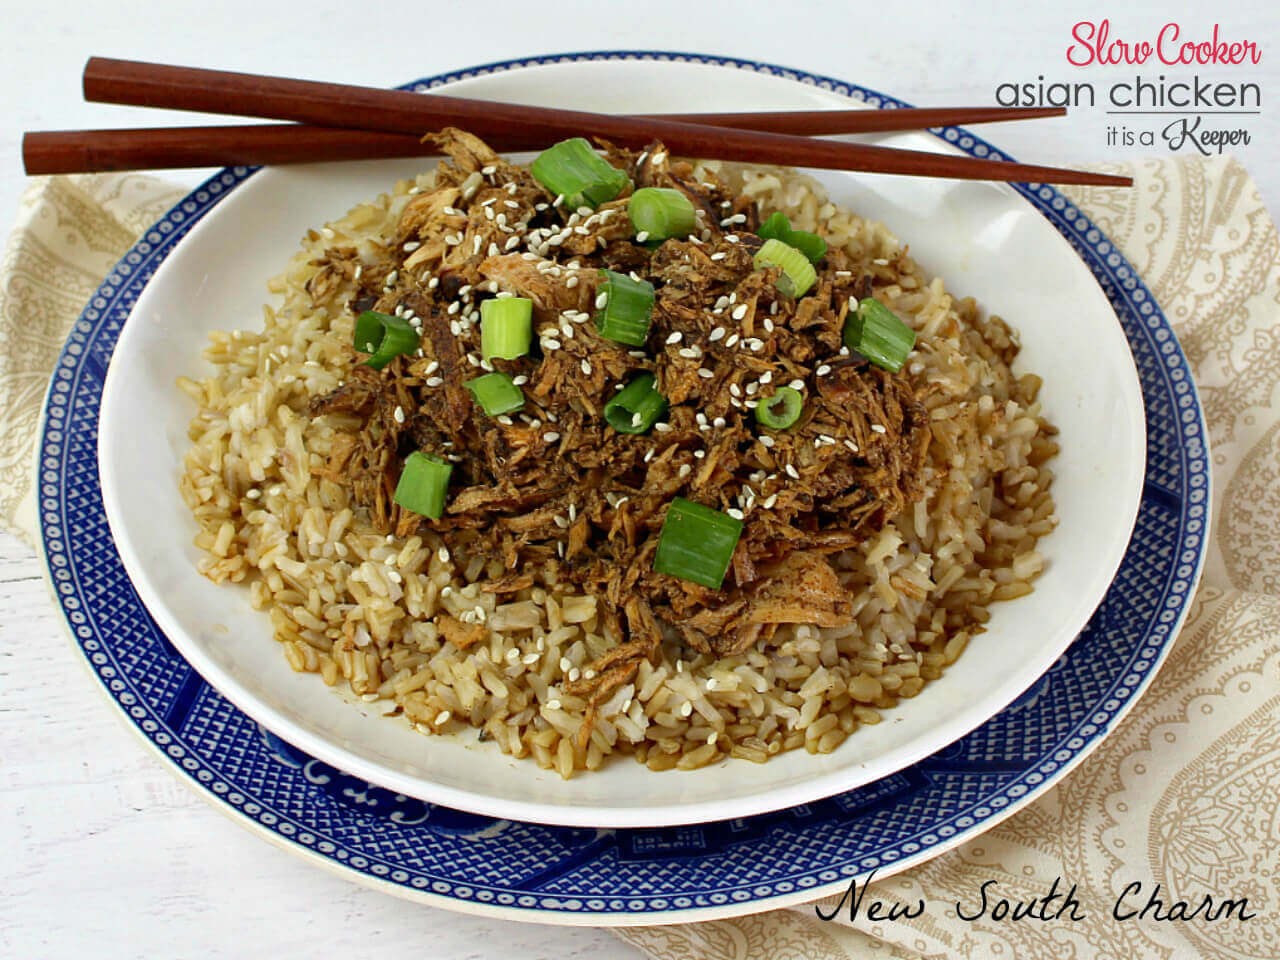 Slow Cooker Asian Chicken - this is one of my favorite easy crock pot recipes for chicken